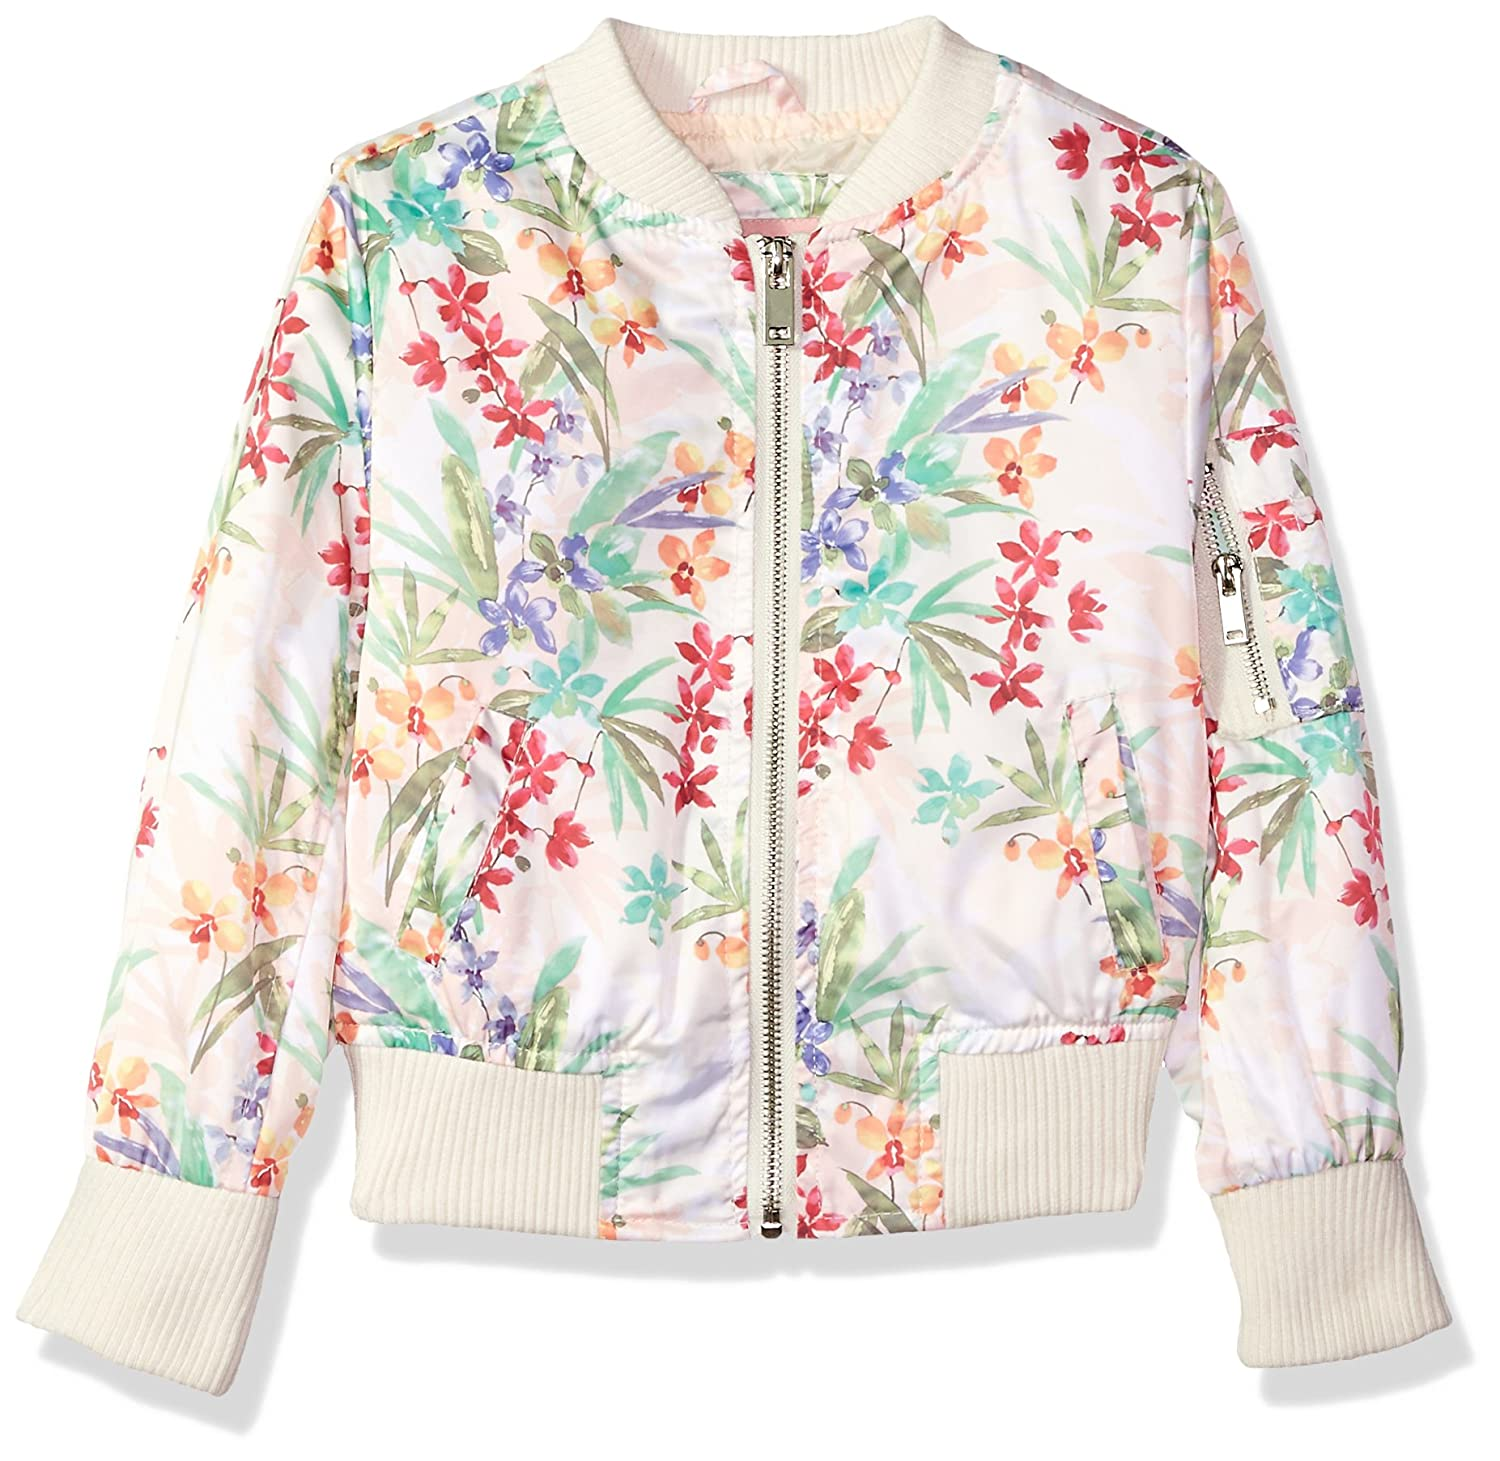 Urban Republic Toddler Girls Floral Bomber Jacket Ivory 2T